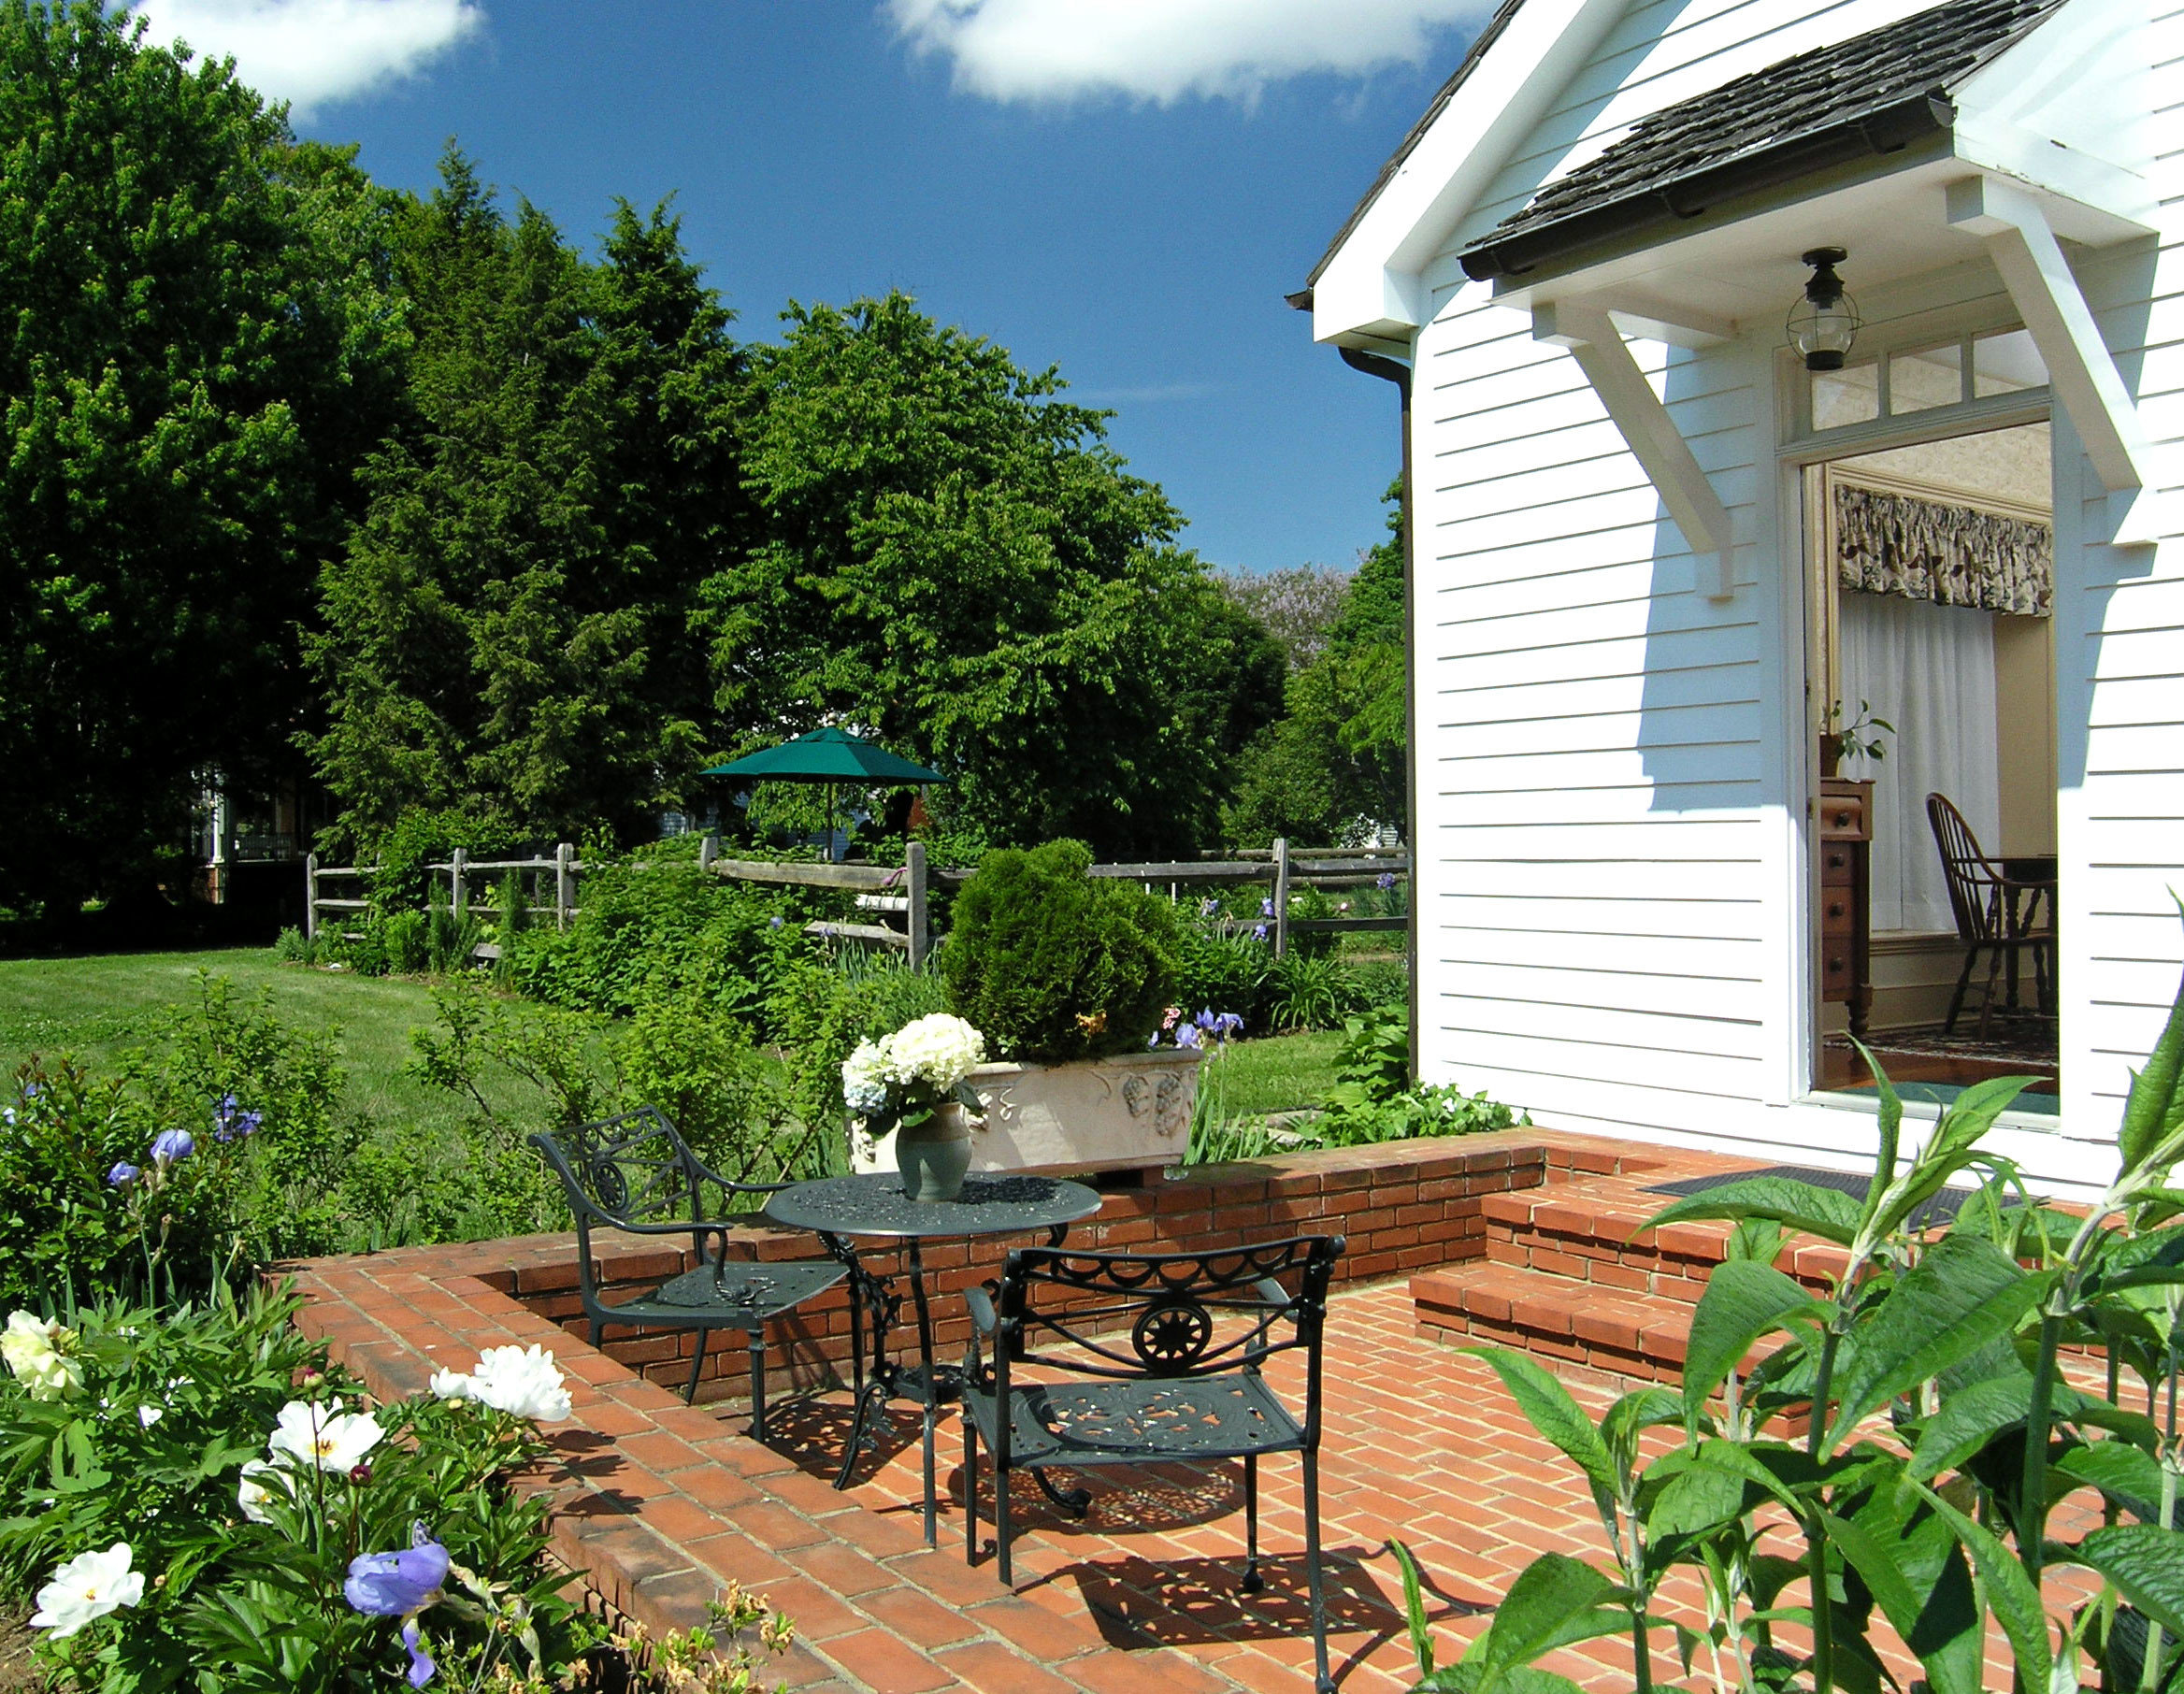 B&B Classic Country Grounds Inn Patio Romantic tree property building house home backyard yard cottage Garden Villa outdoor structure wooden Resort lawn porch stone